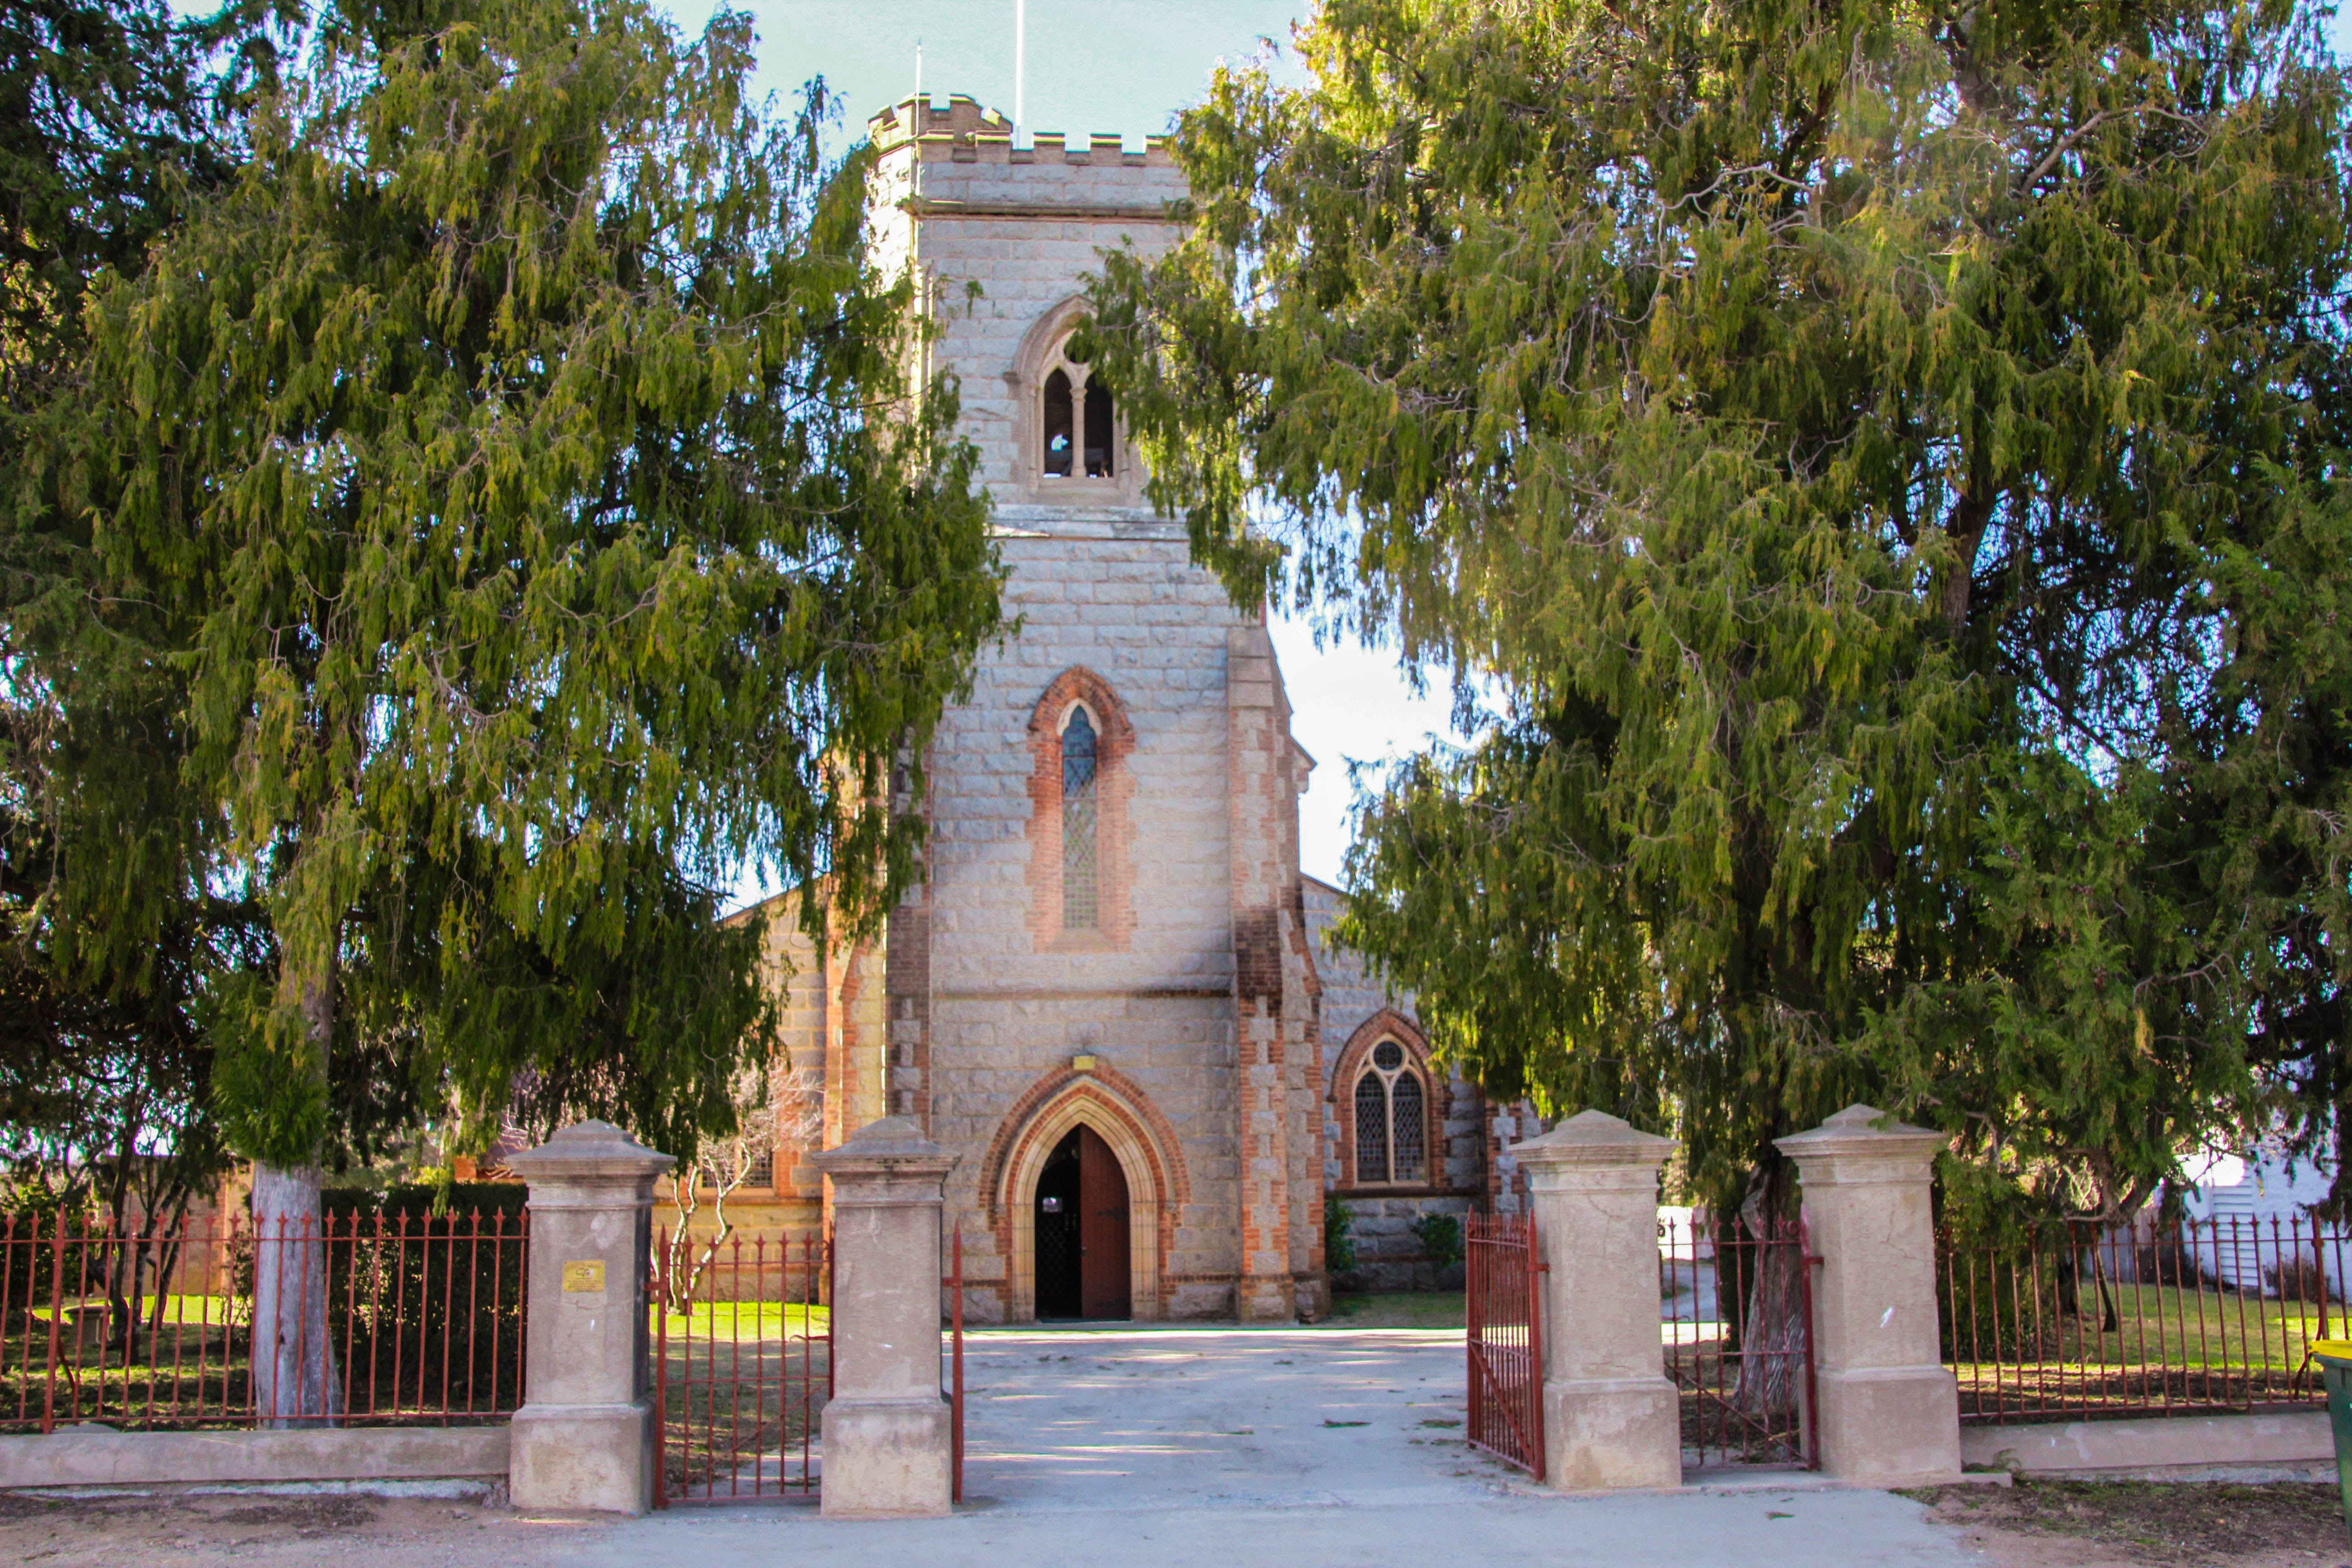 Parish Church of St Andrew - Accommodation in Bendigo